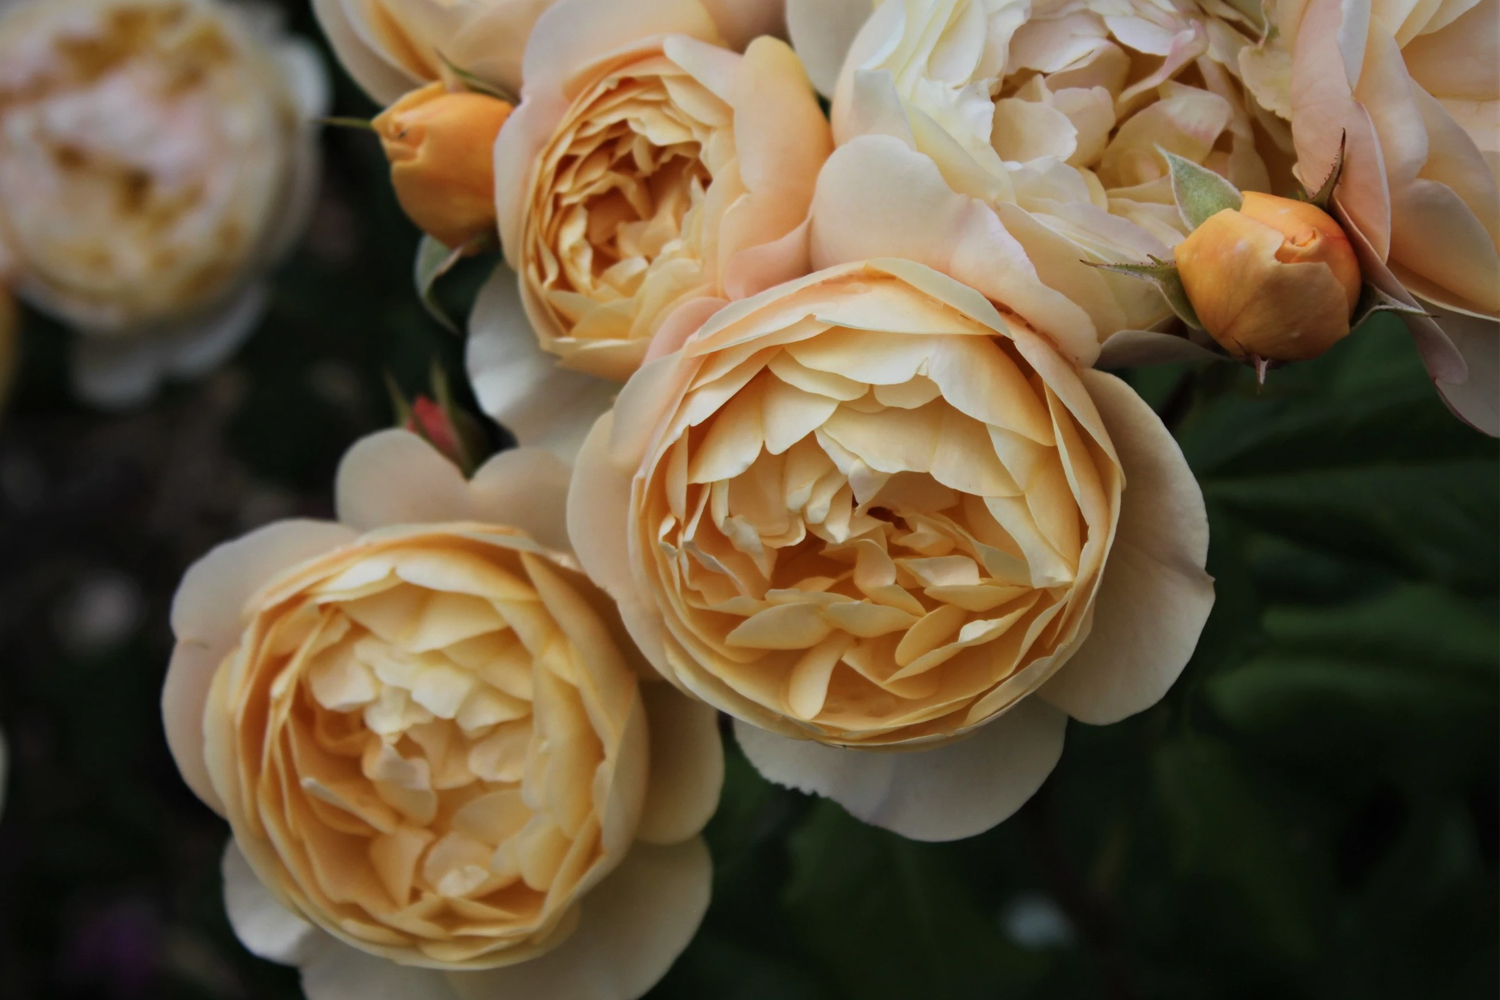 a close up photo of a rose flower